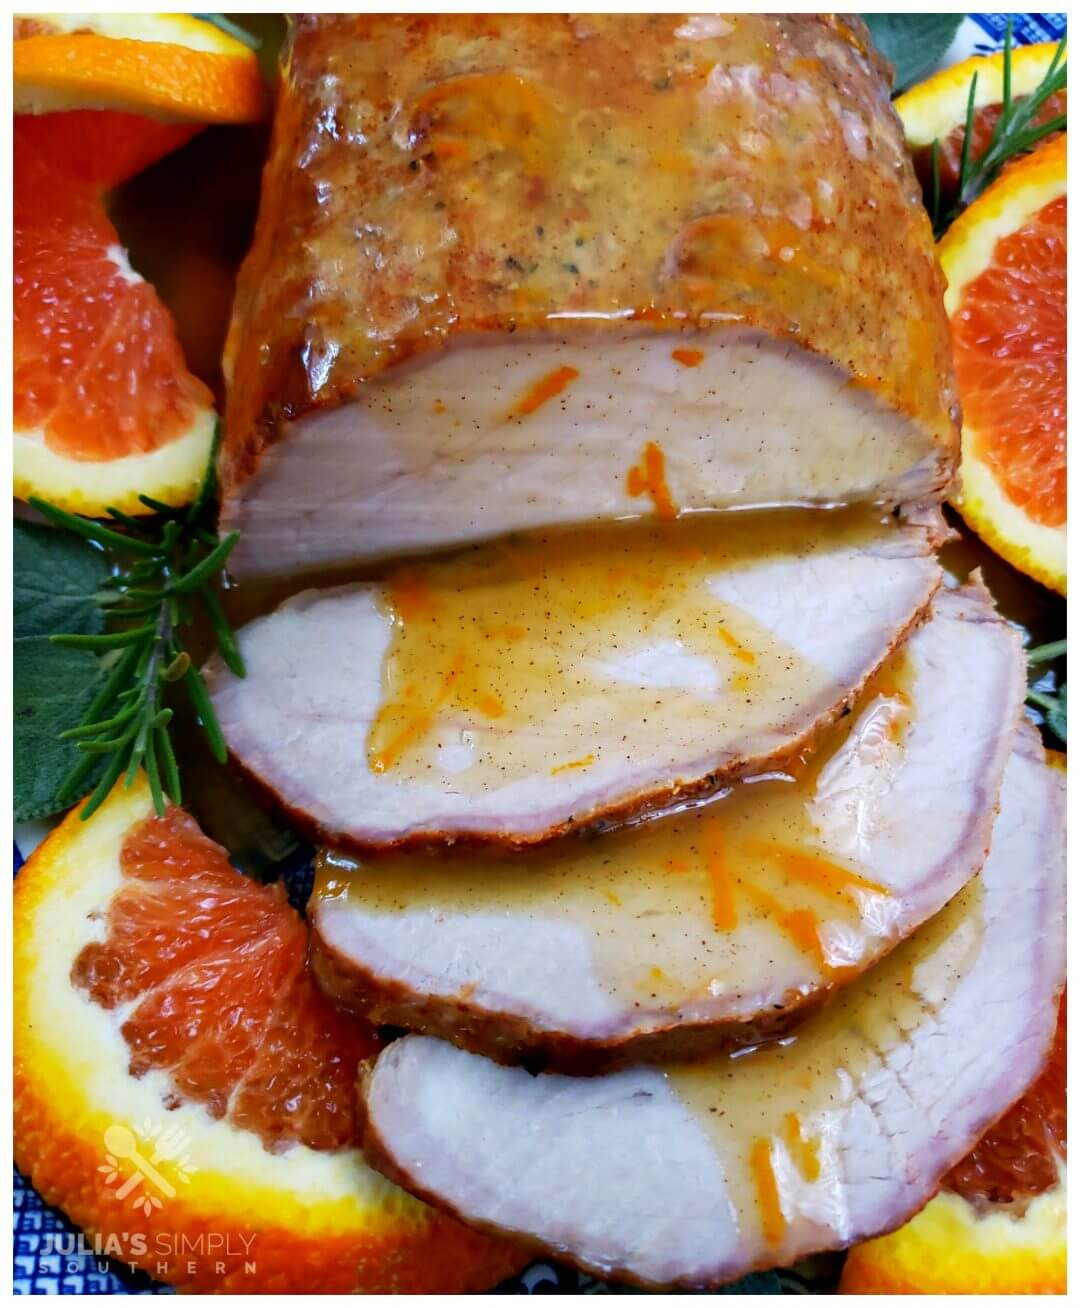 Easy oven roasted marinated pork roast with a fresh spiced orange sauce. This easy recipe is served on a platter garnished with fresh orange slices and topped with the orange sauce.